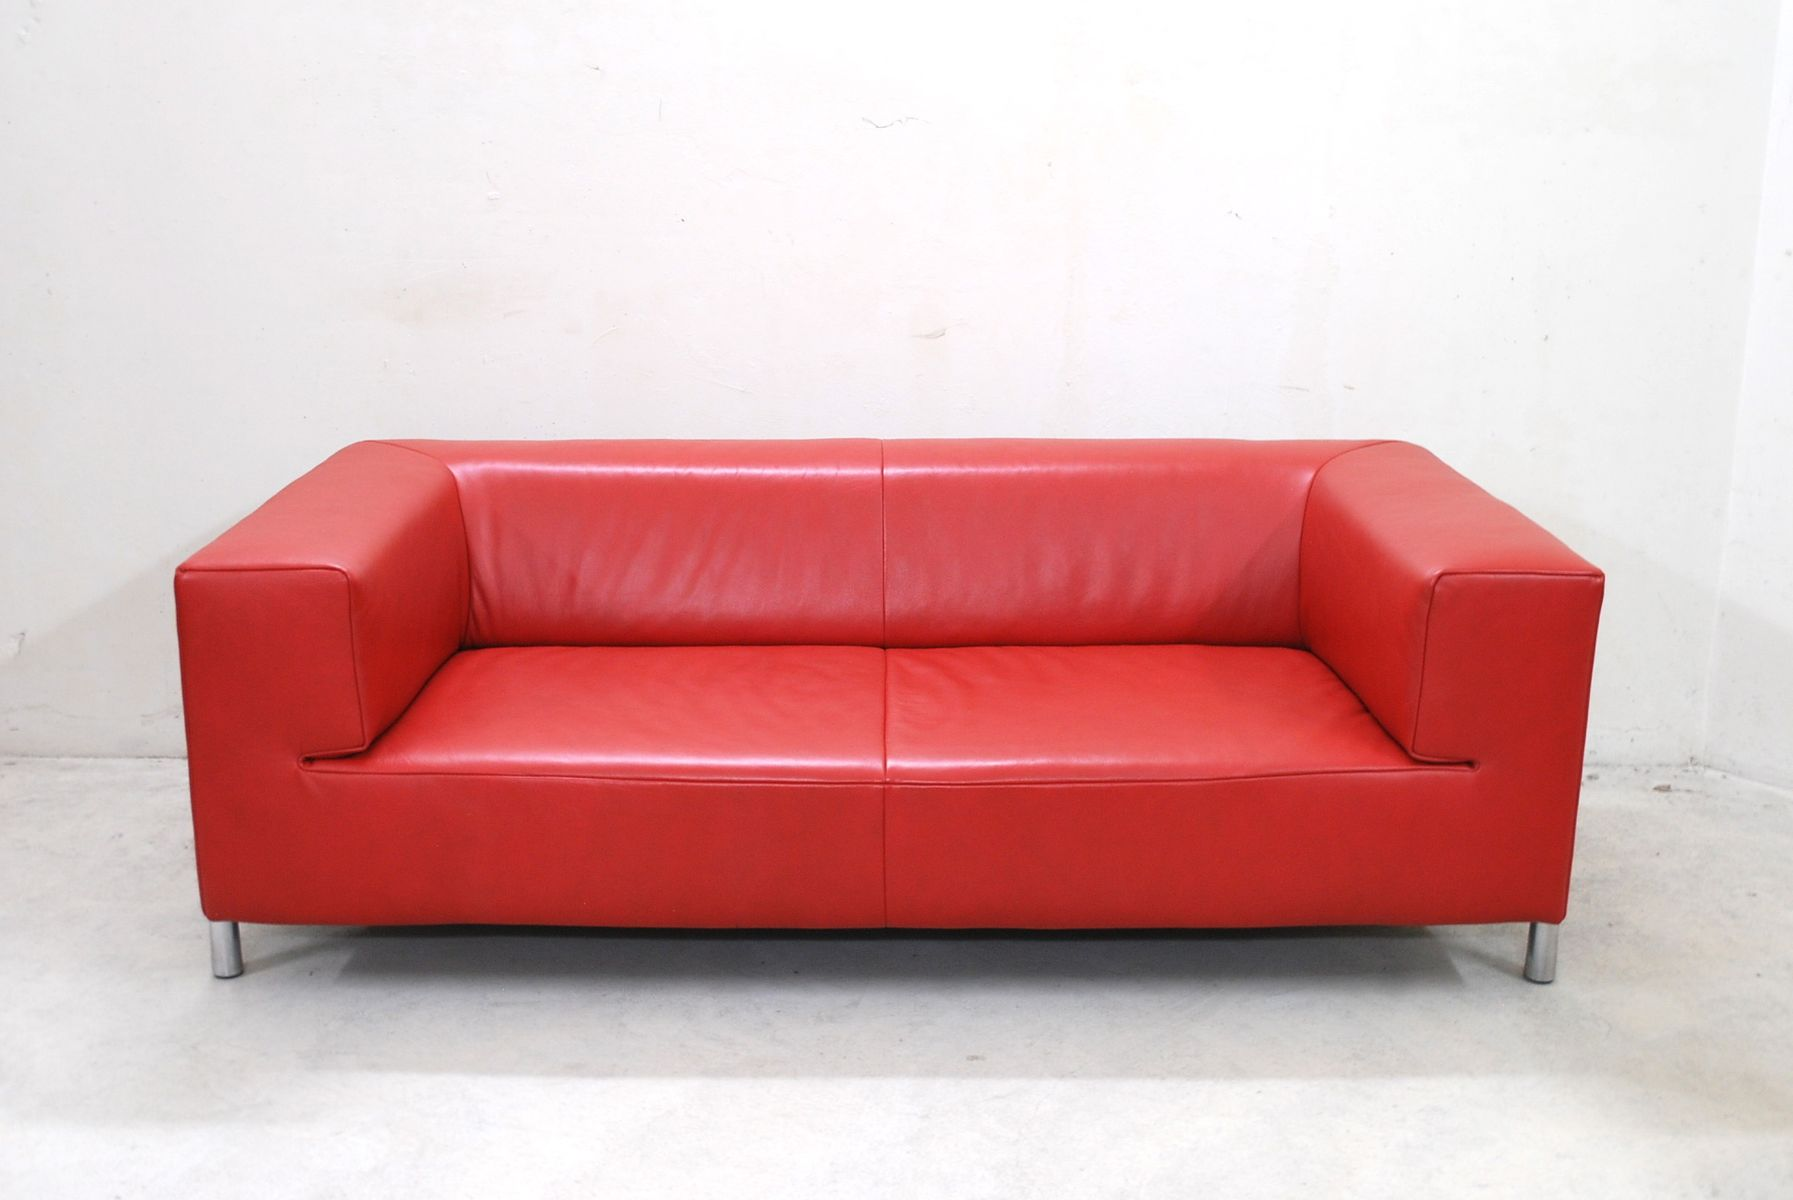 vintage red leather genesis sofa from koinor for sale at. Black Bedroom Furniture Sets. Home Design Ideas